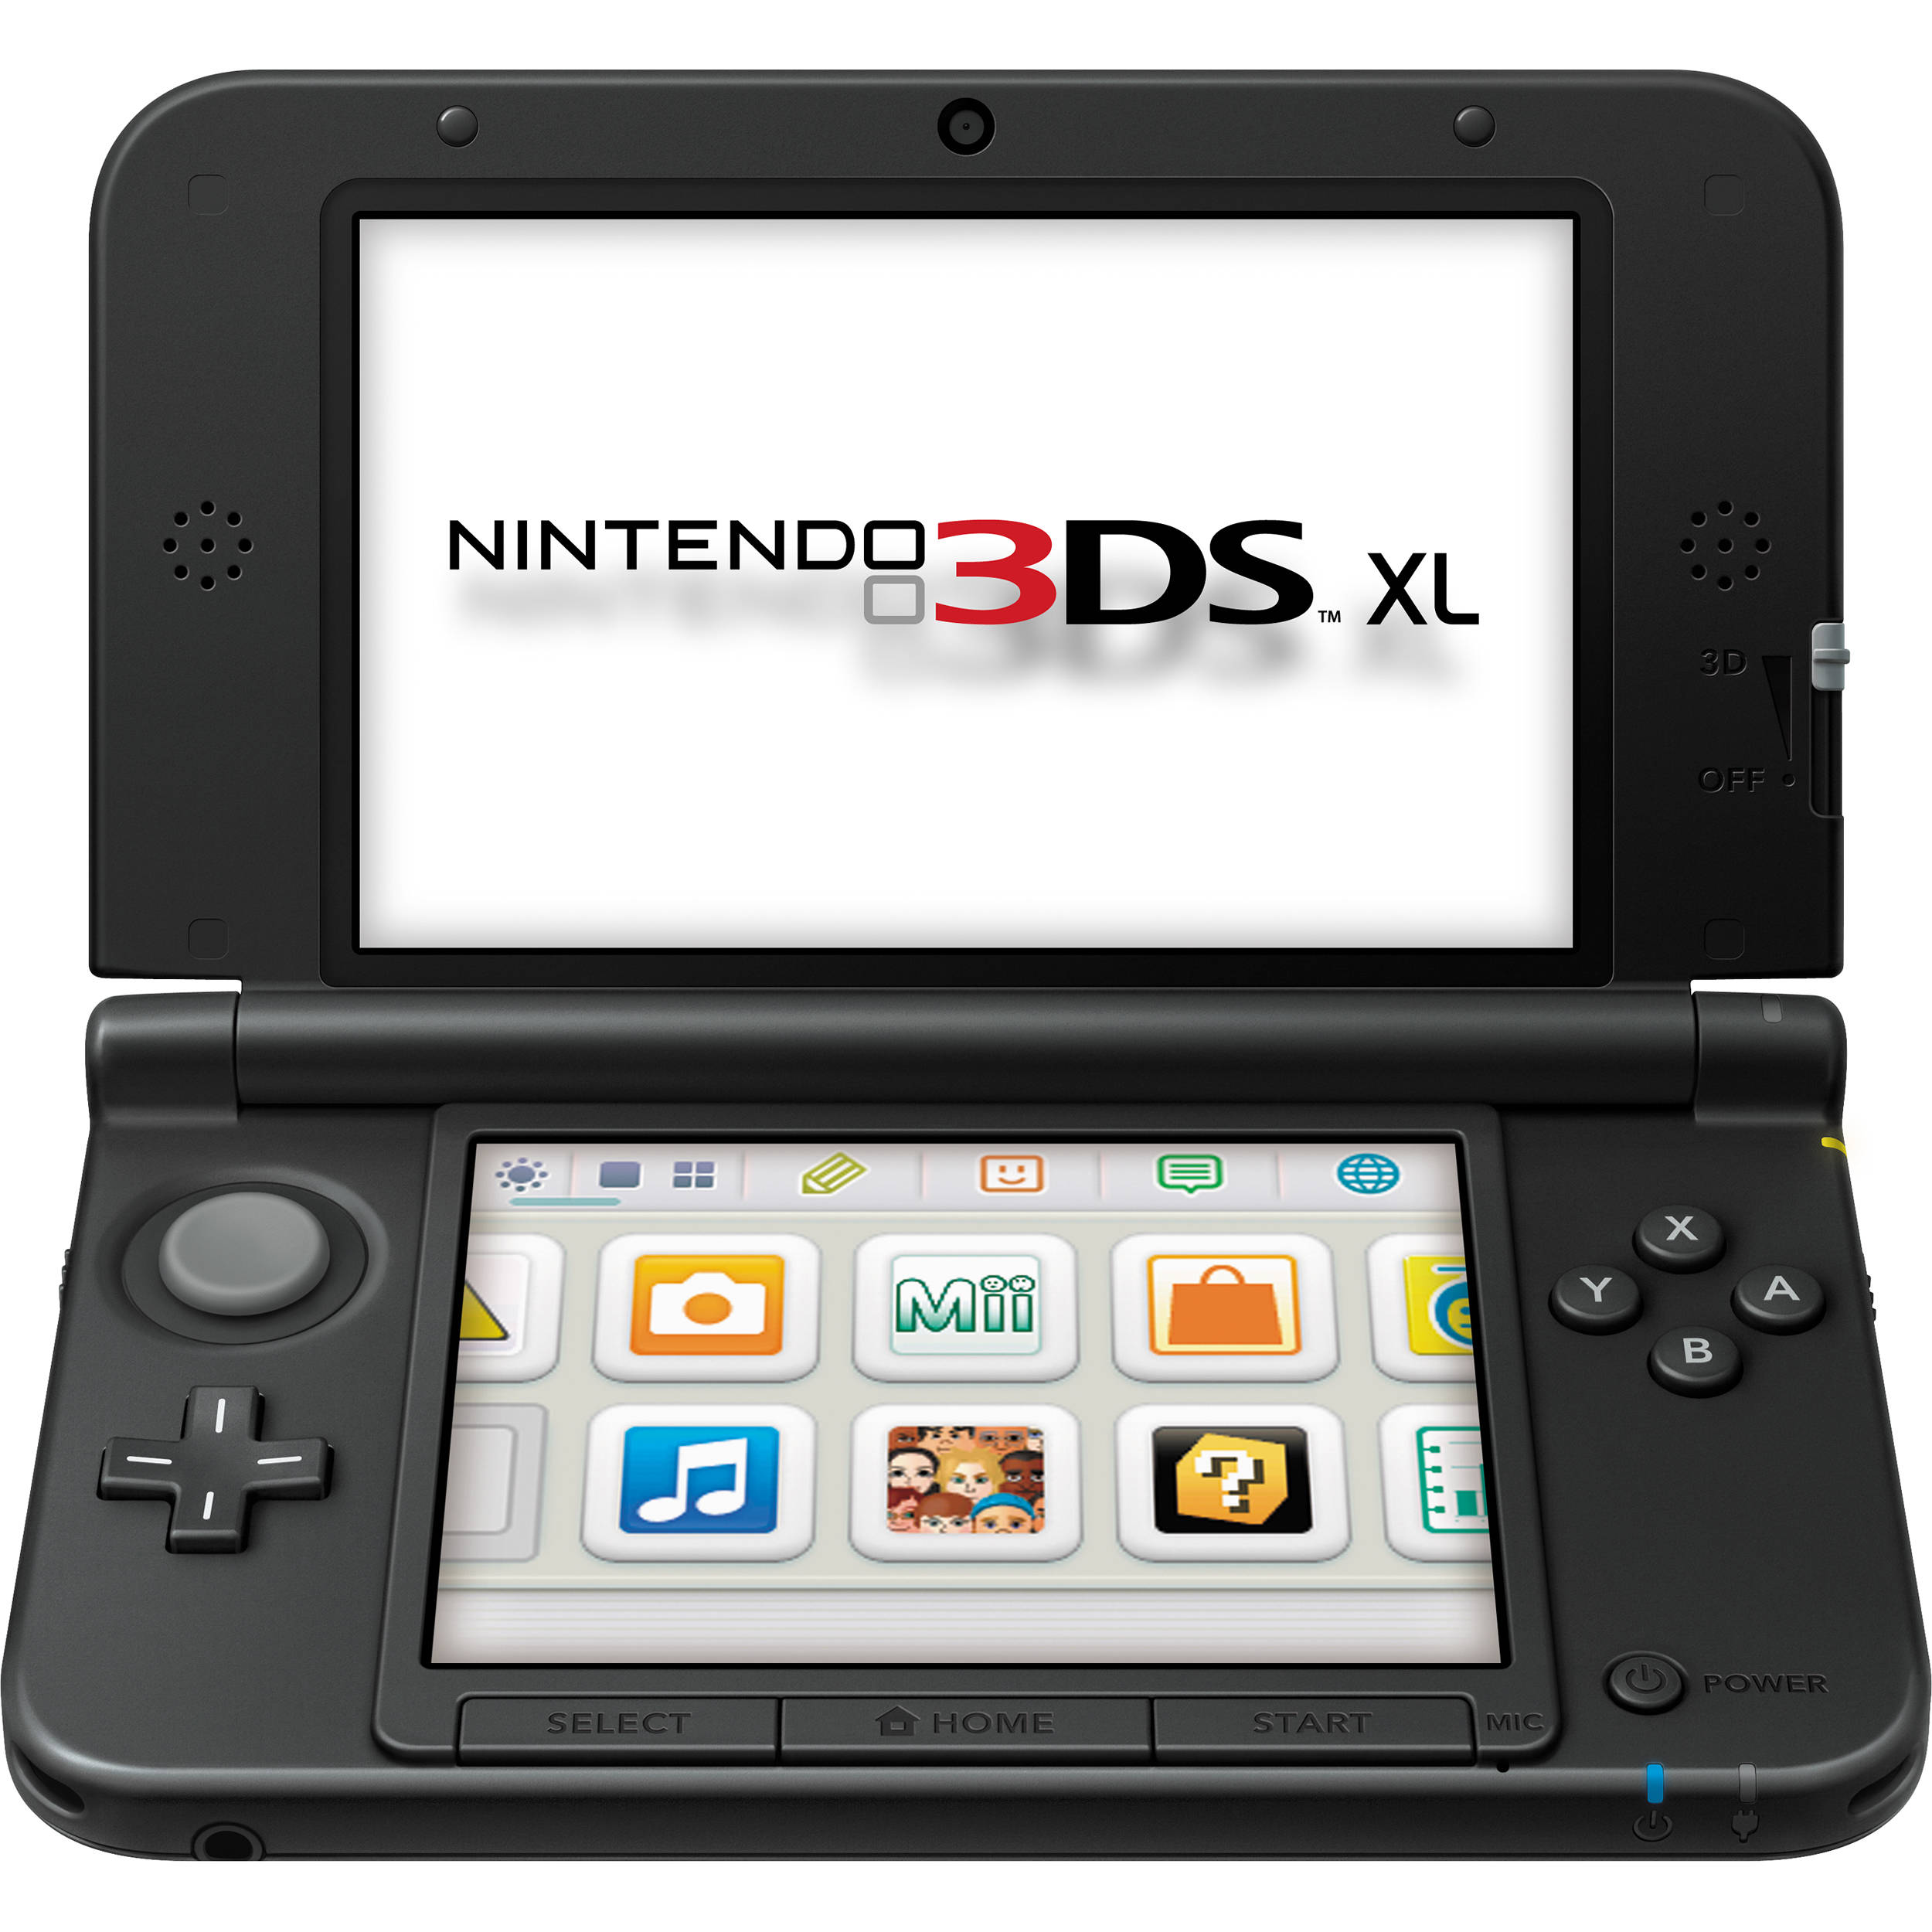 Nintendo 3DS XL Handheld Gaming System (Black) SPRSKKAB B&H